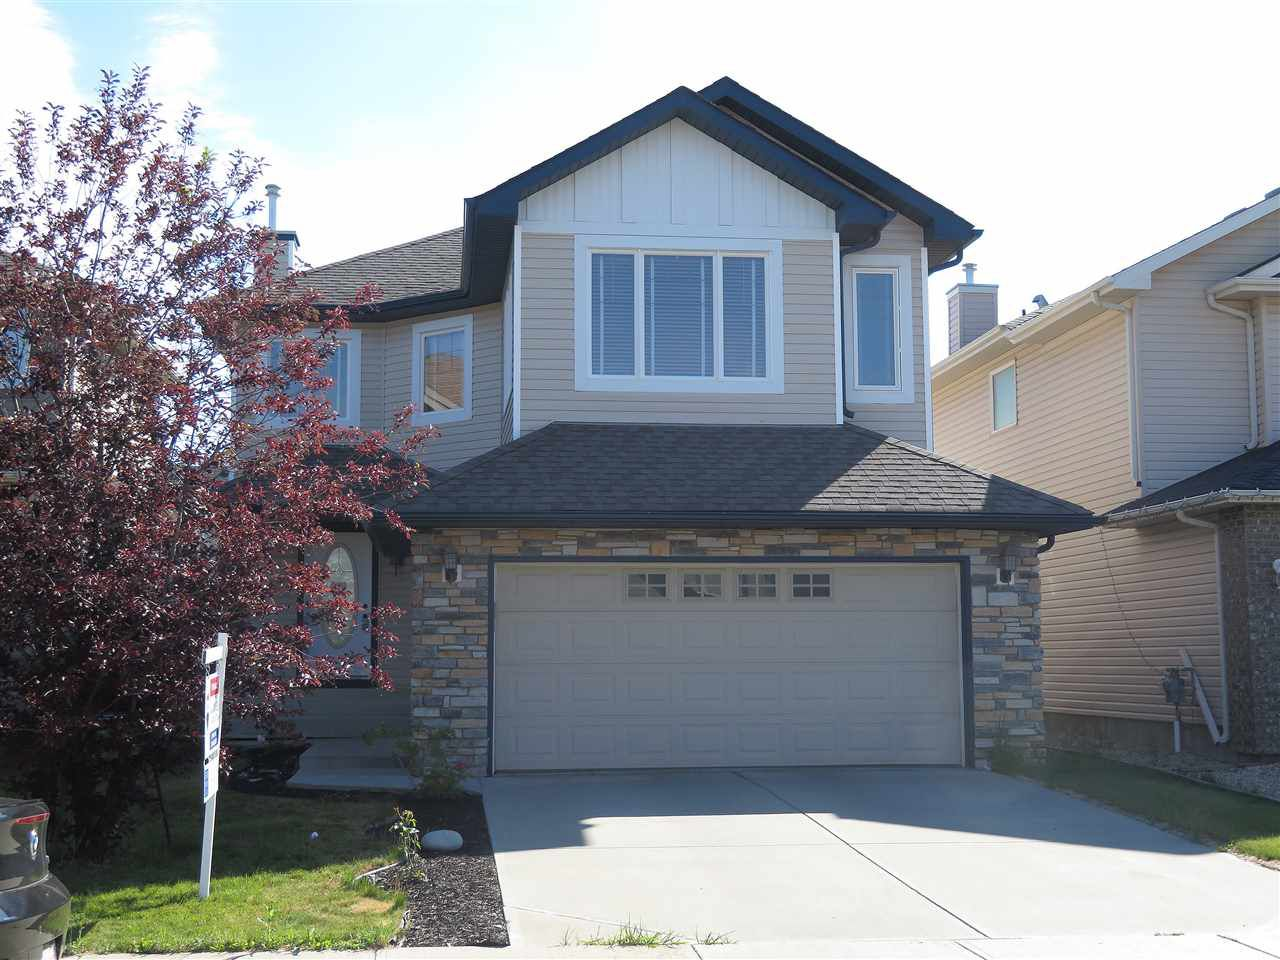 Main Photo: 7356 SINGER Way in Edmonton: Zone 14 House for sale : MLS®# E4134270